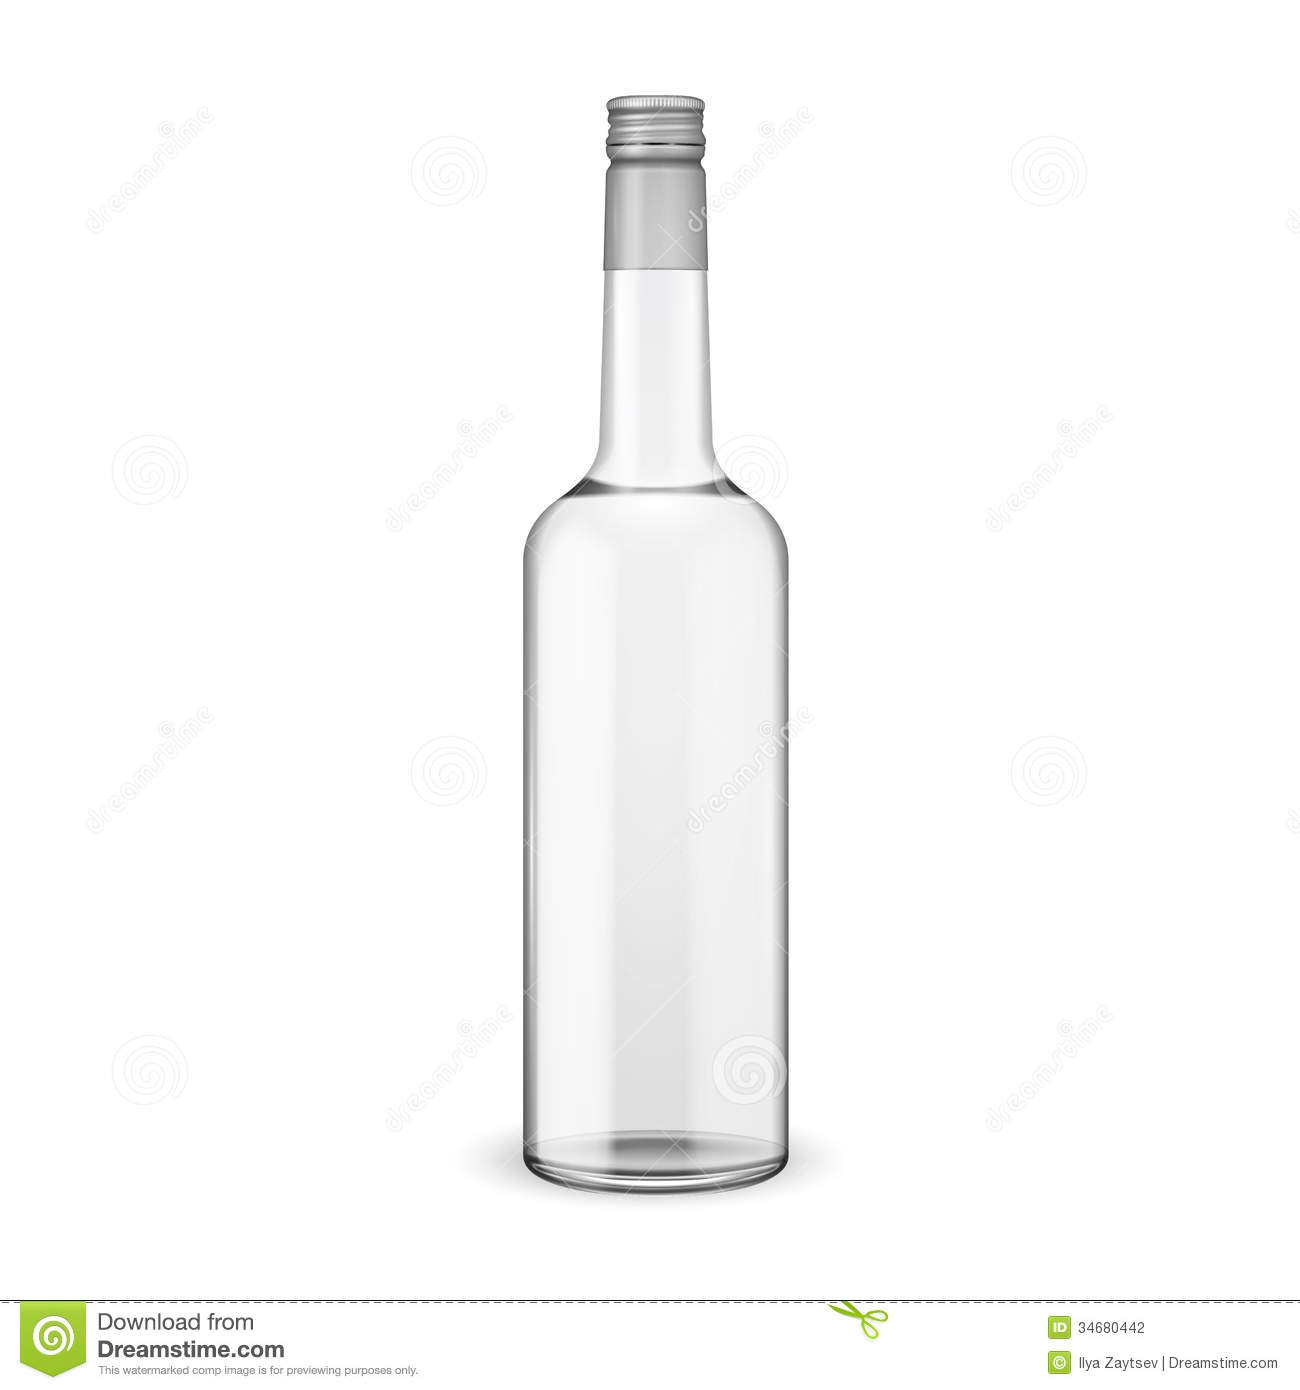 Black And White Glass Bottle Transparent Background